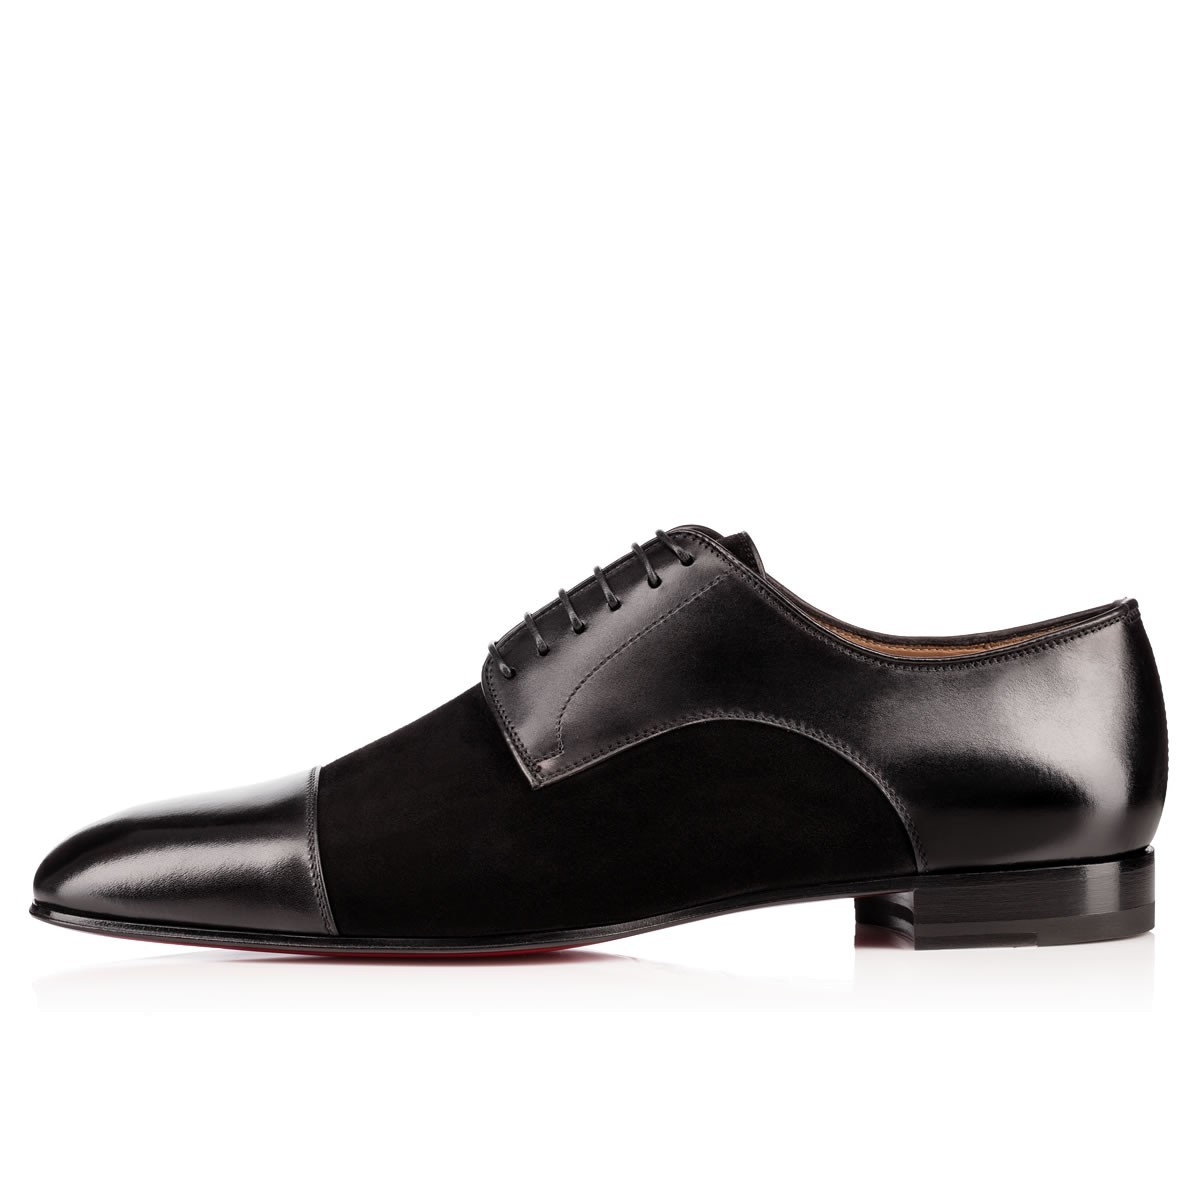 Handmade Men's Black Two Tone Leather And Suede Oxford Shoes